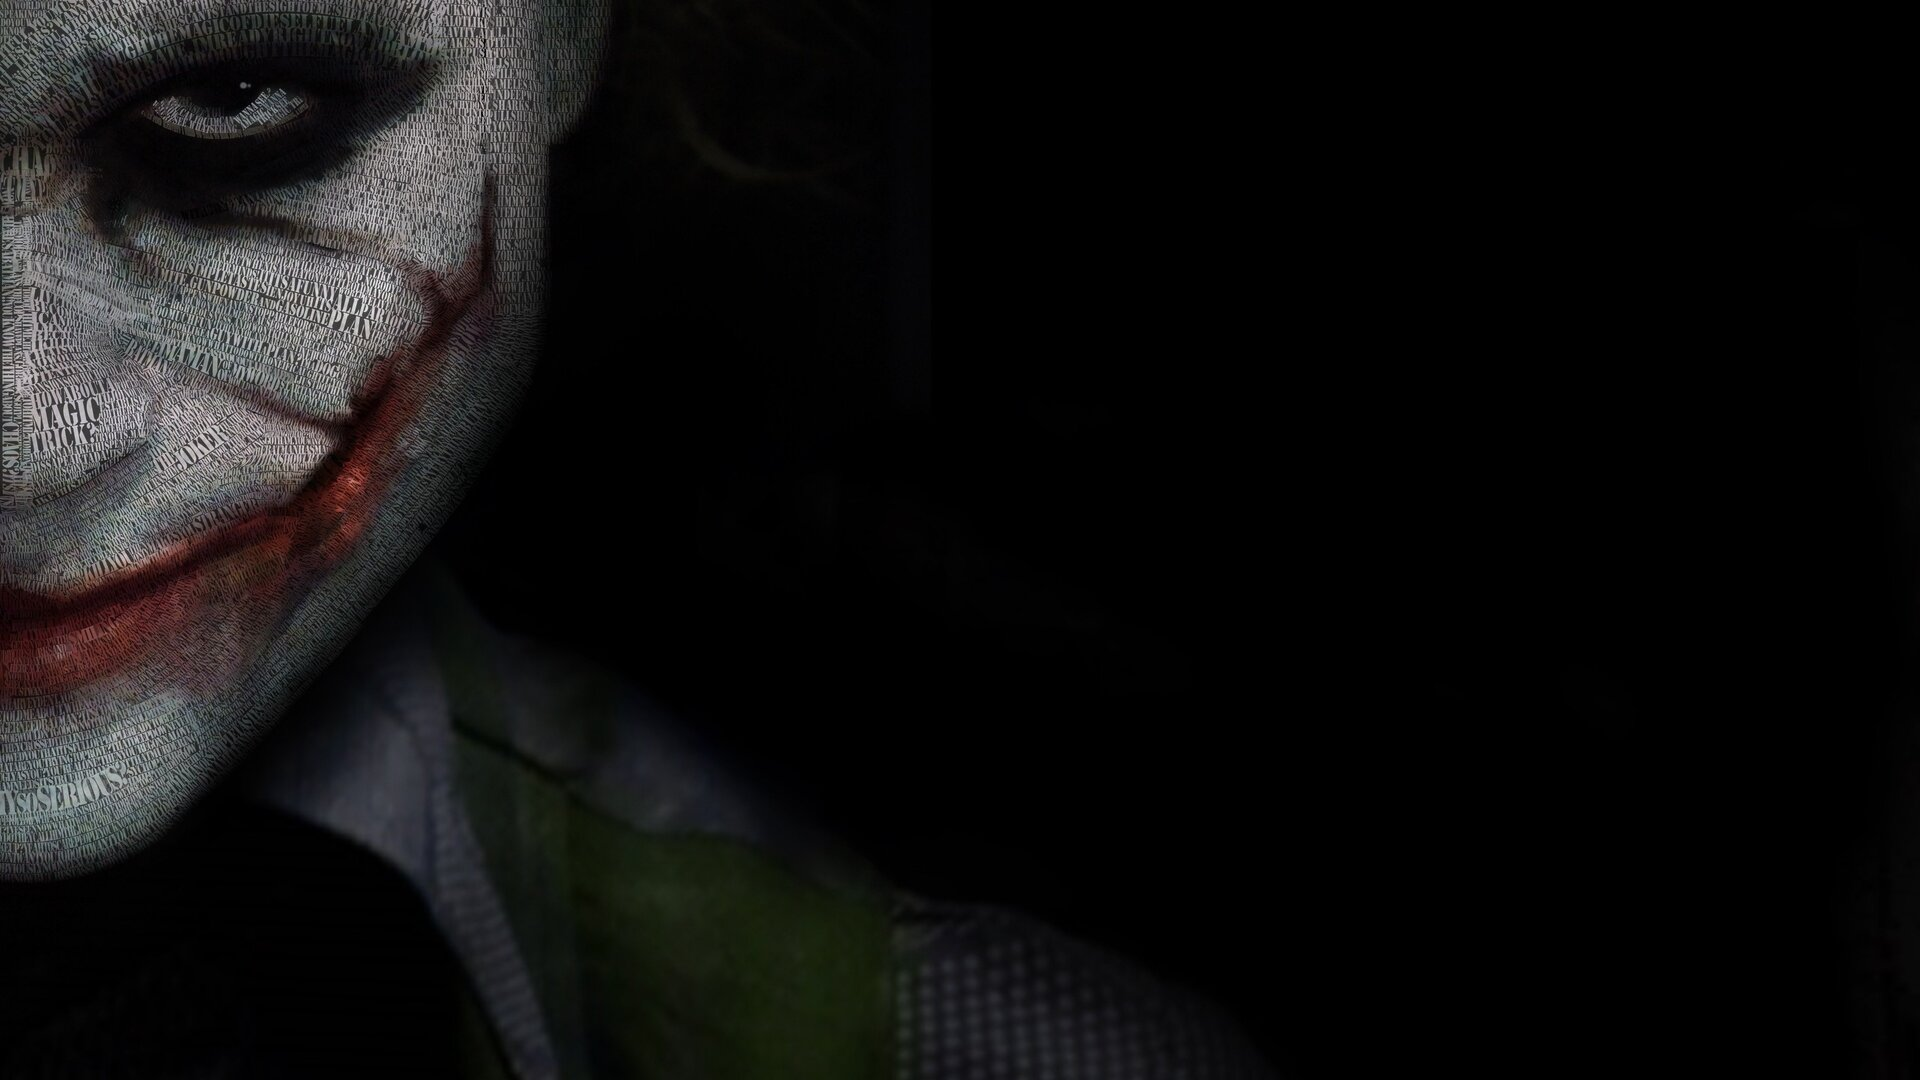 1920x1080 4k Joker Laptop Full Hd 1080p Hd 4k Wallpapers Images Backgrounds Photos And Pictures